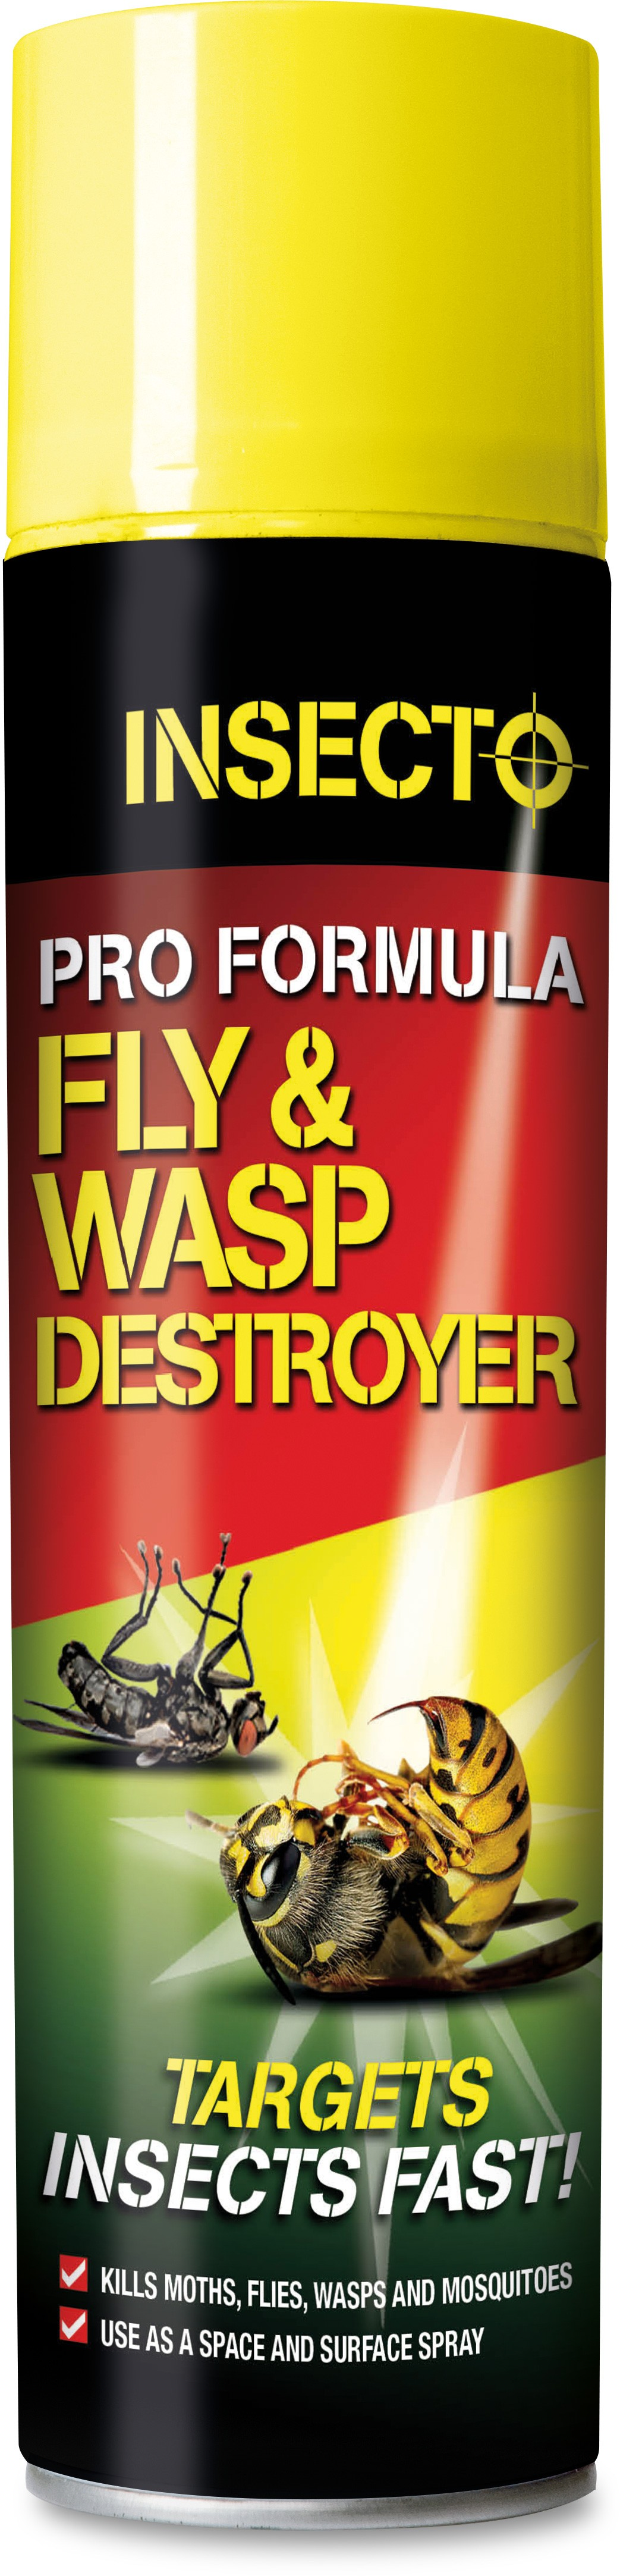 Insecto Pro Formula Fly & Wasp Destroyer 300ml